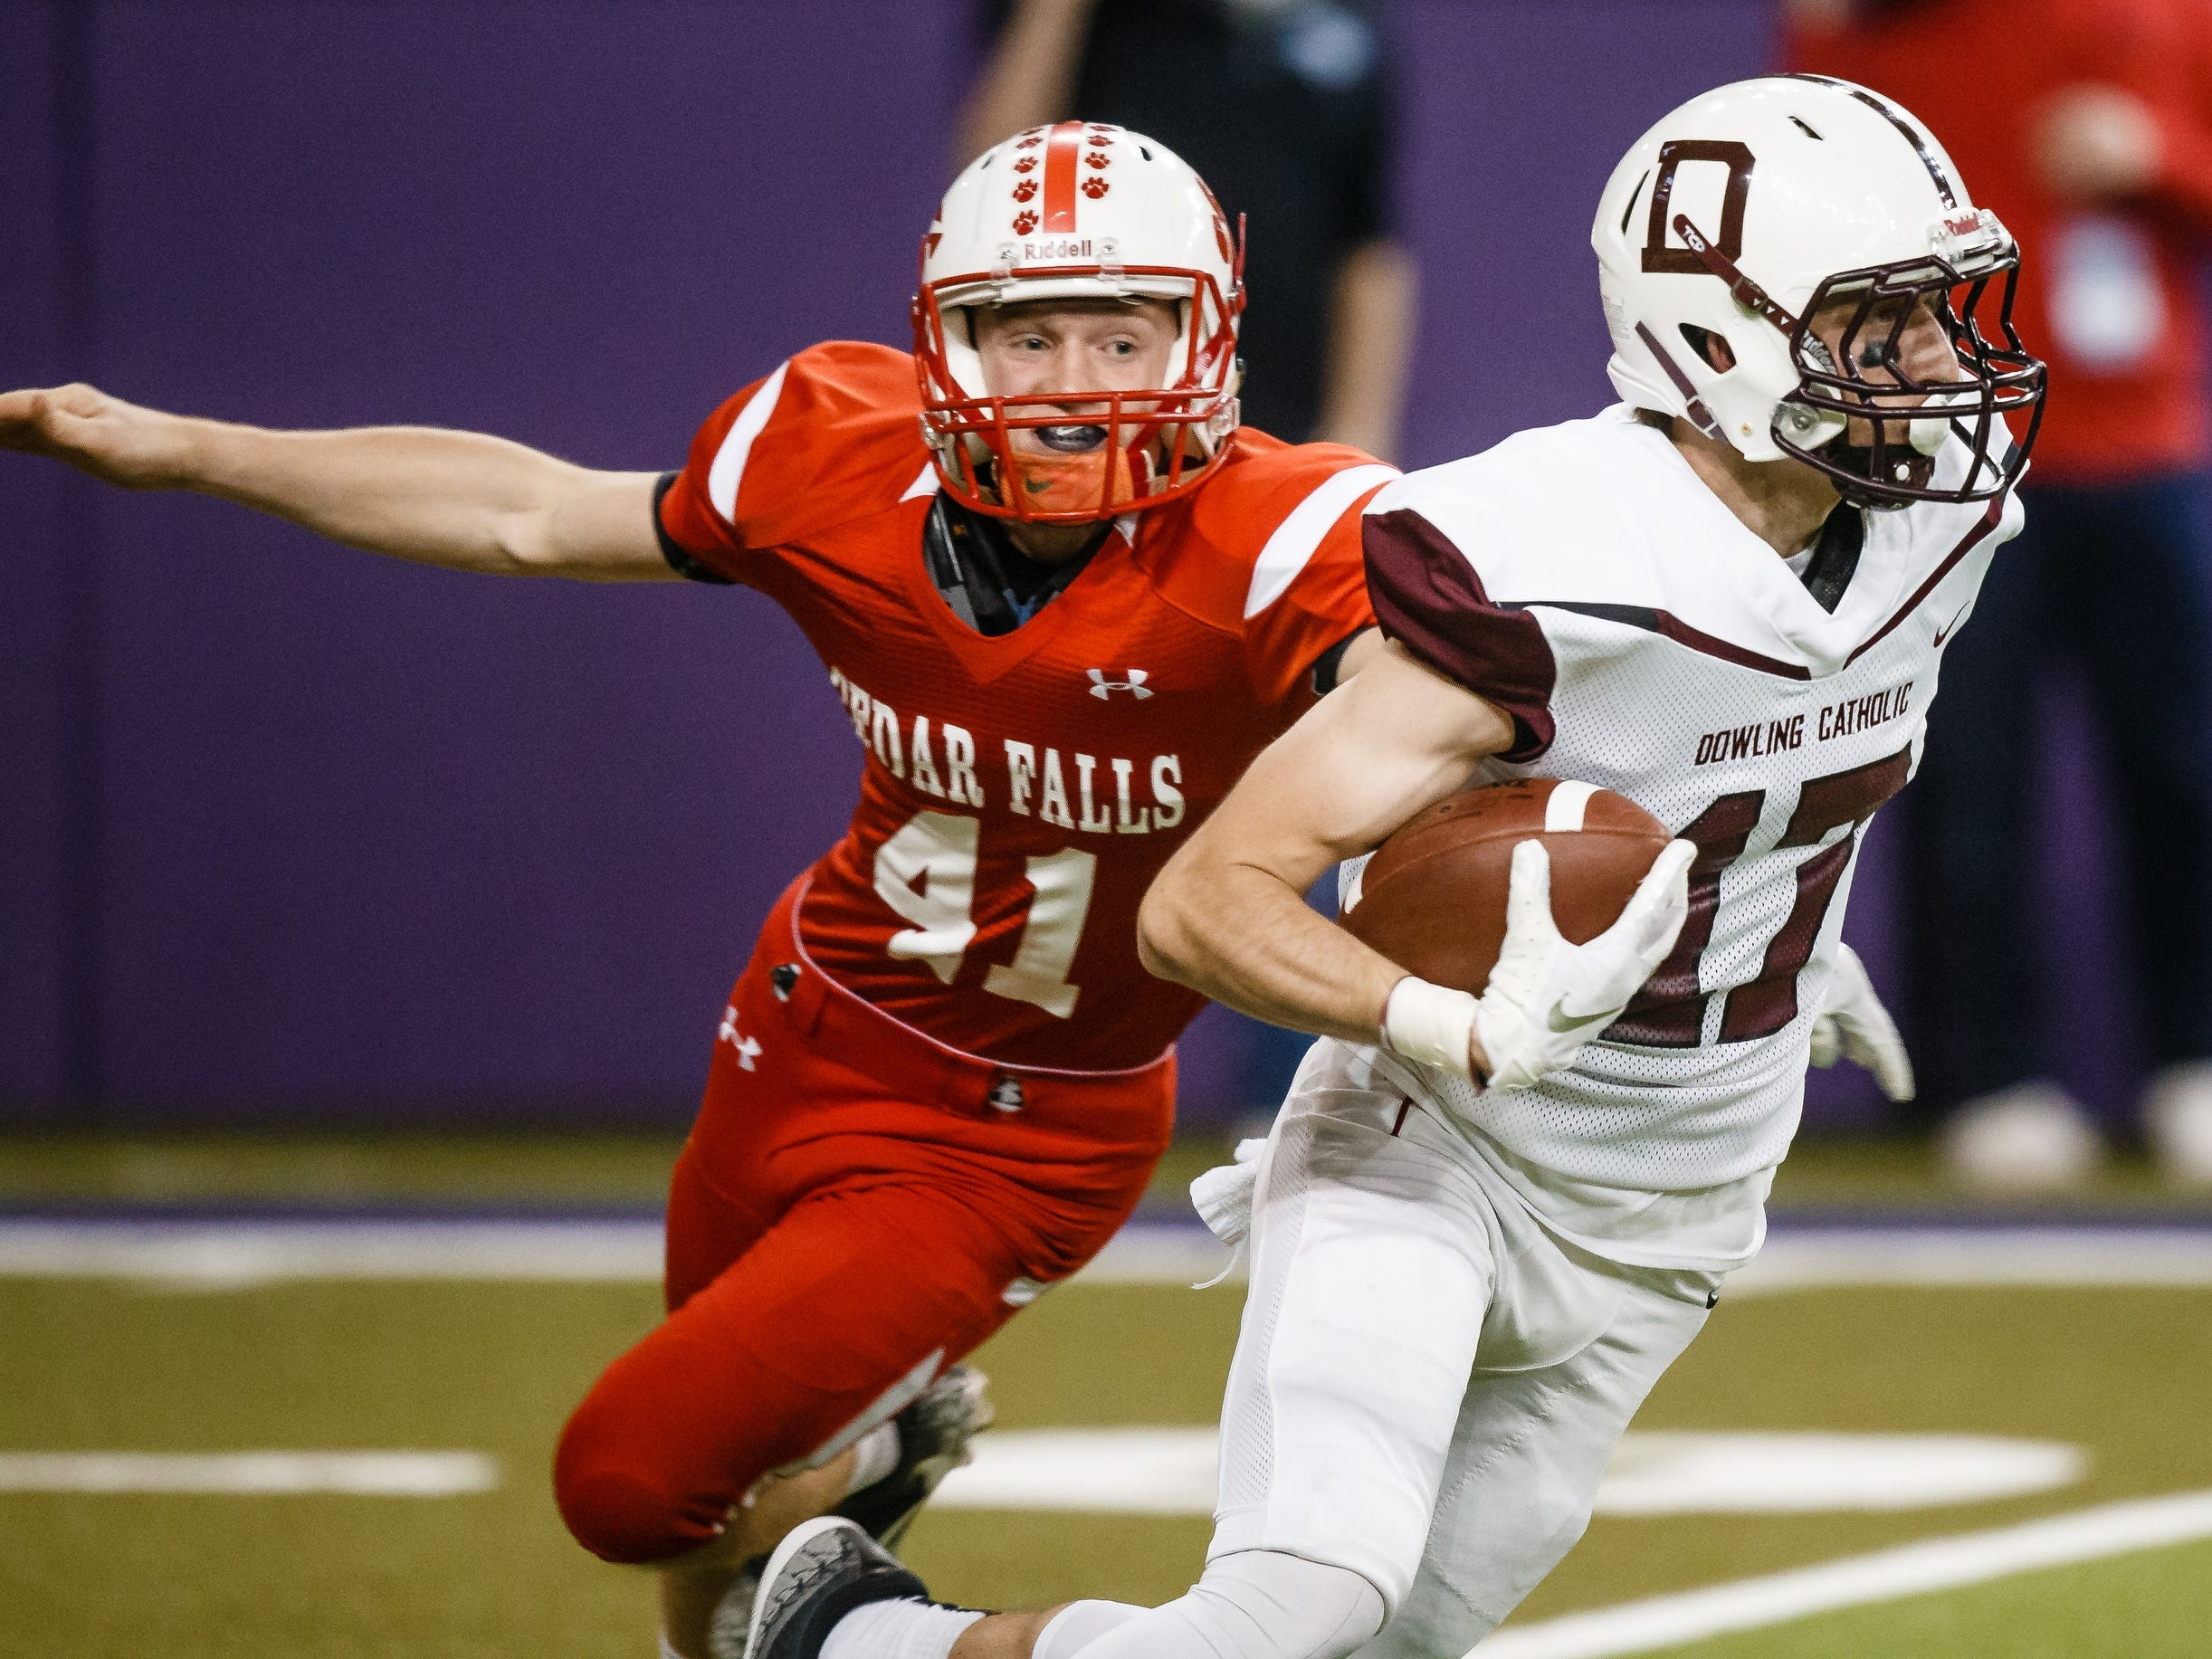 Dowling Catholic's Matt Stilwill (17) is chased by Cedar Falls's Austin Cross (41) during their class 4A state championship football game on Friday, Nov. 16, 2018, in Cedar Falls. Cedar Falls takes a 13-7 lead into halftime.